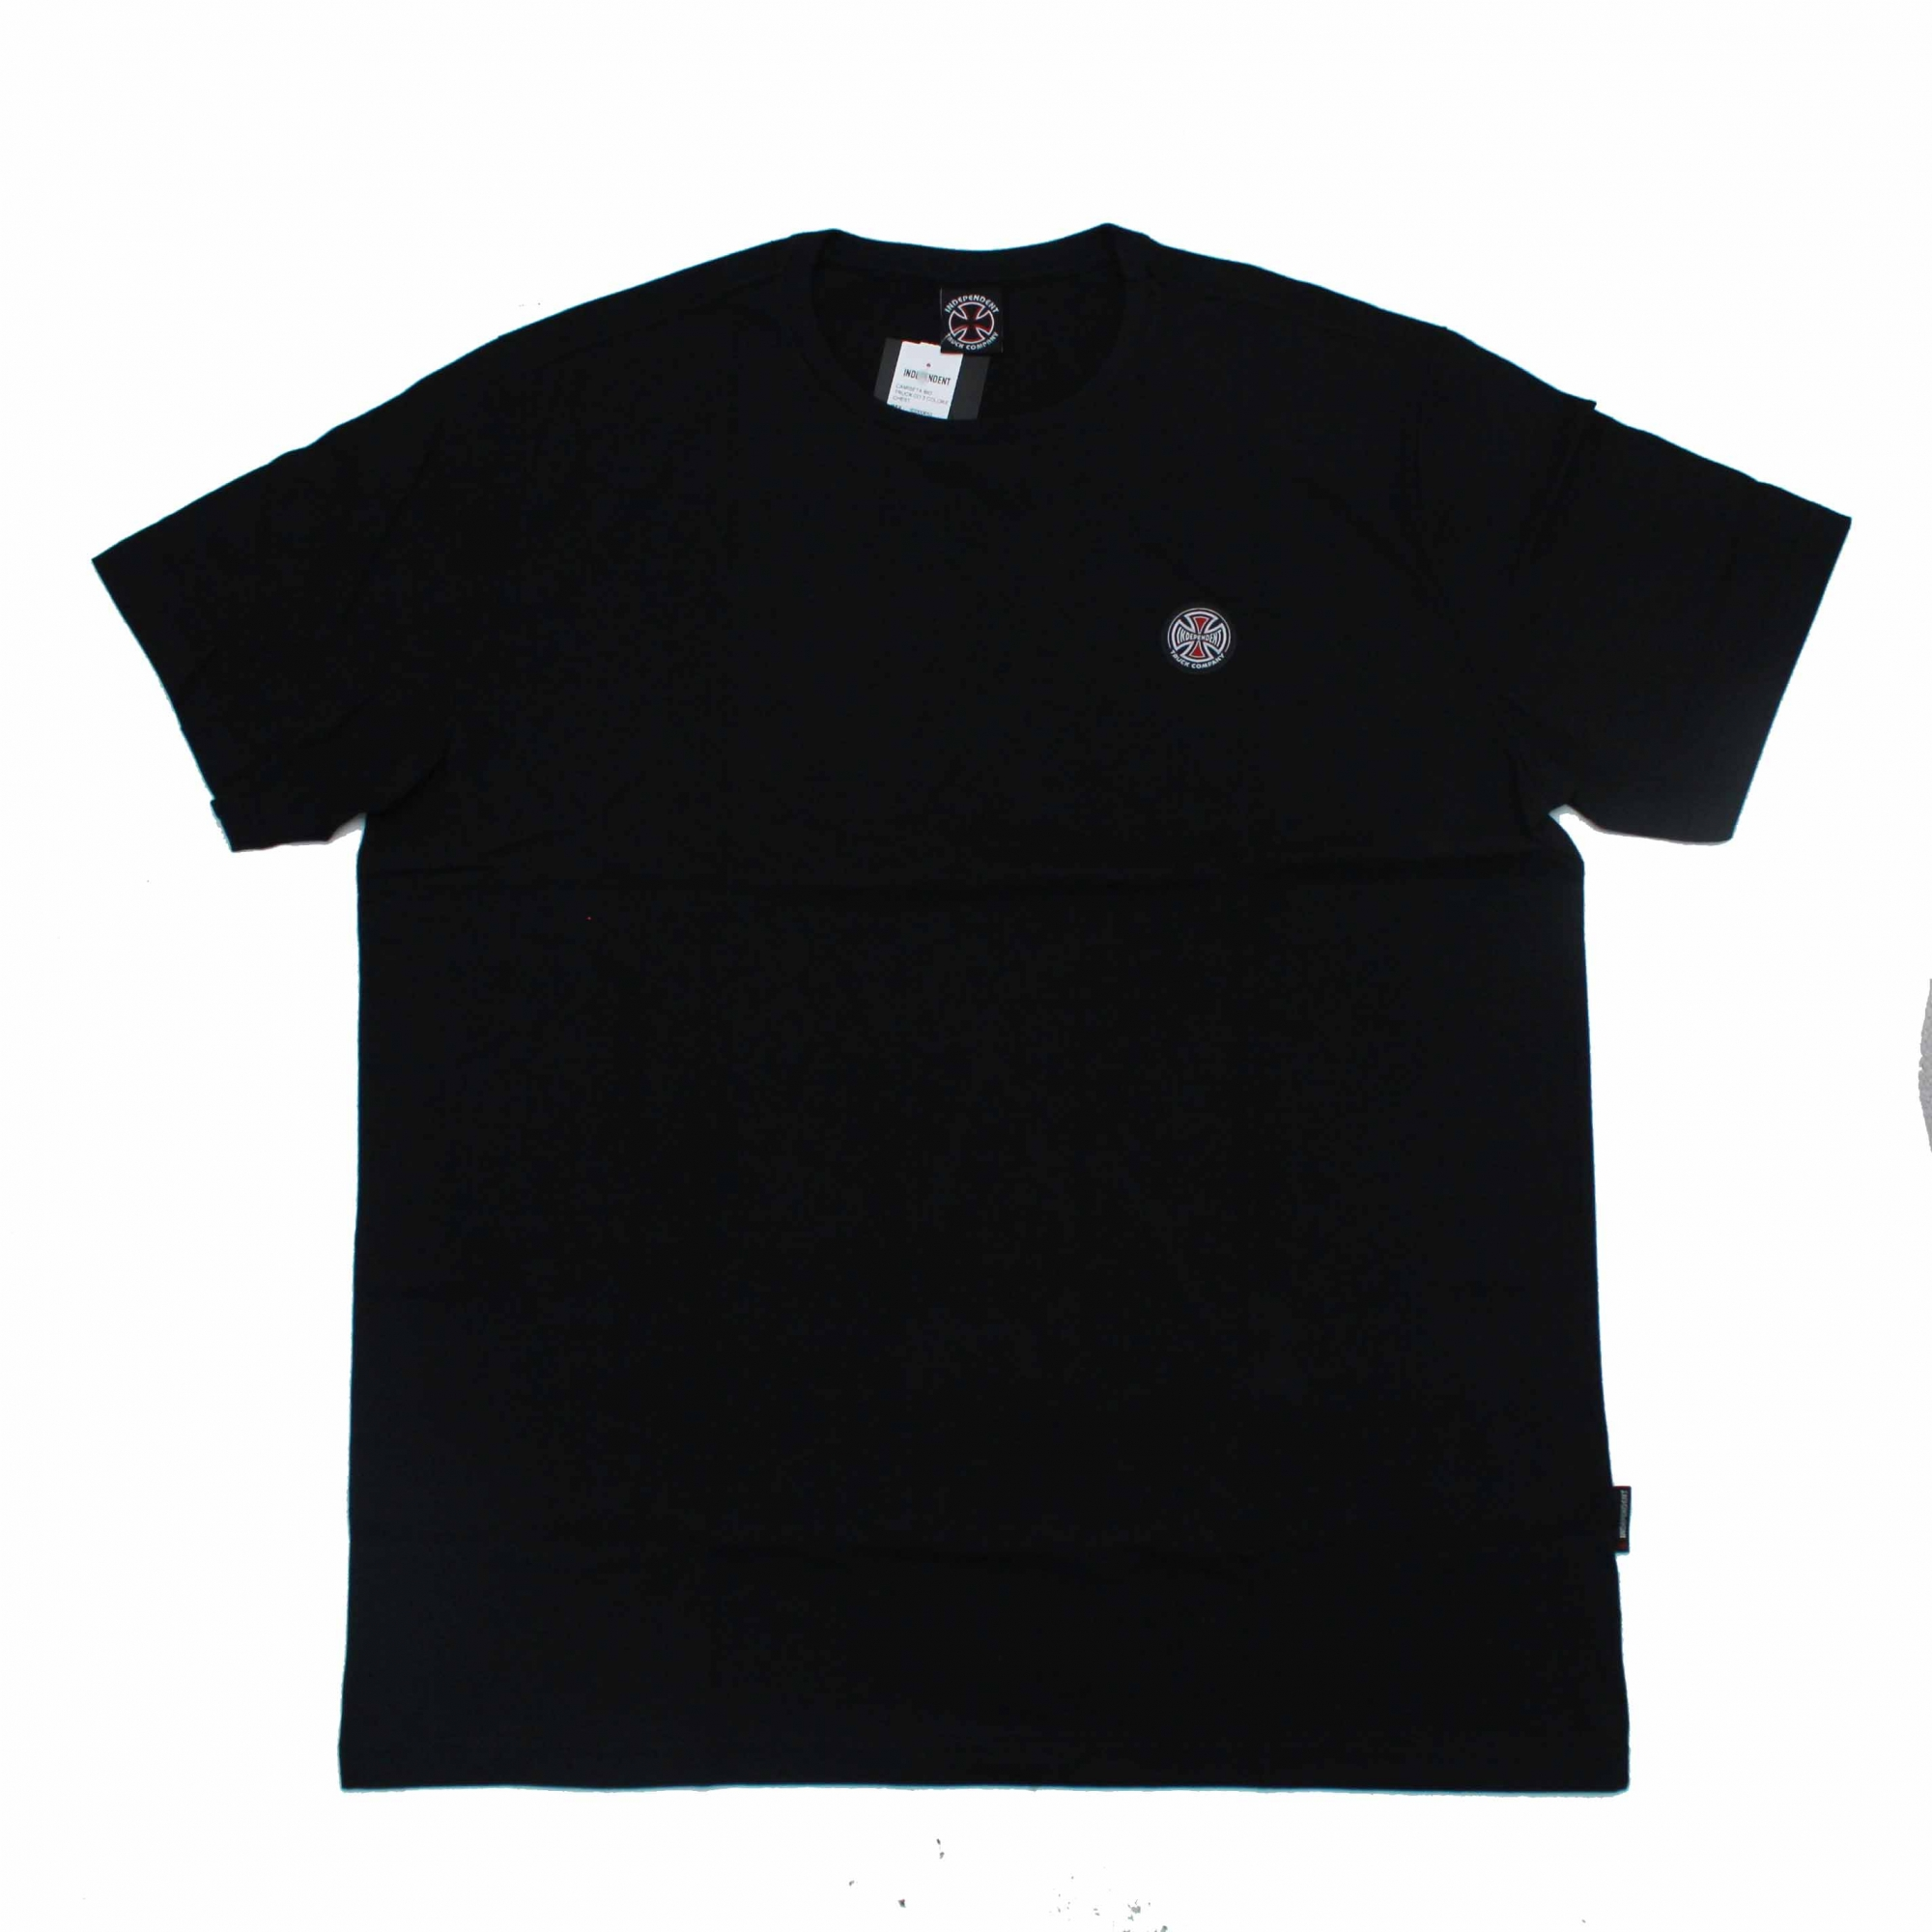 Camiseta Independent Buttom Truck Co 3 Colors Chest - Preto